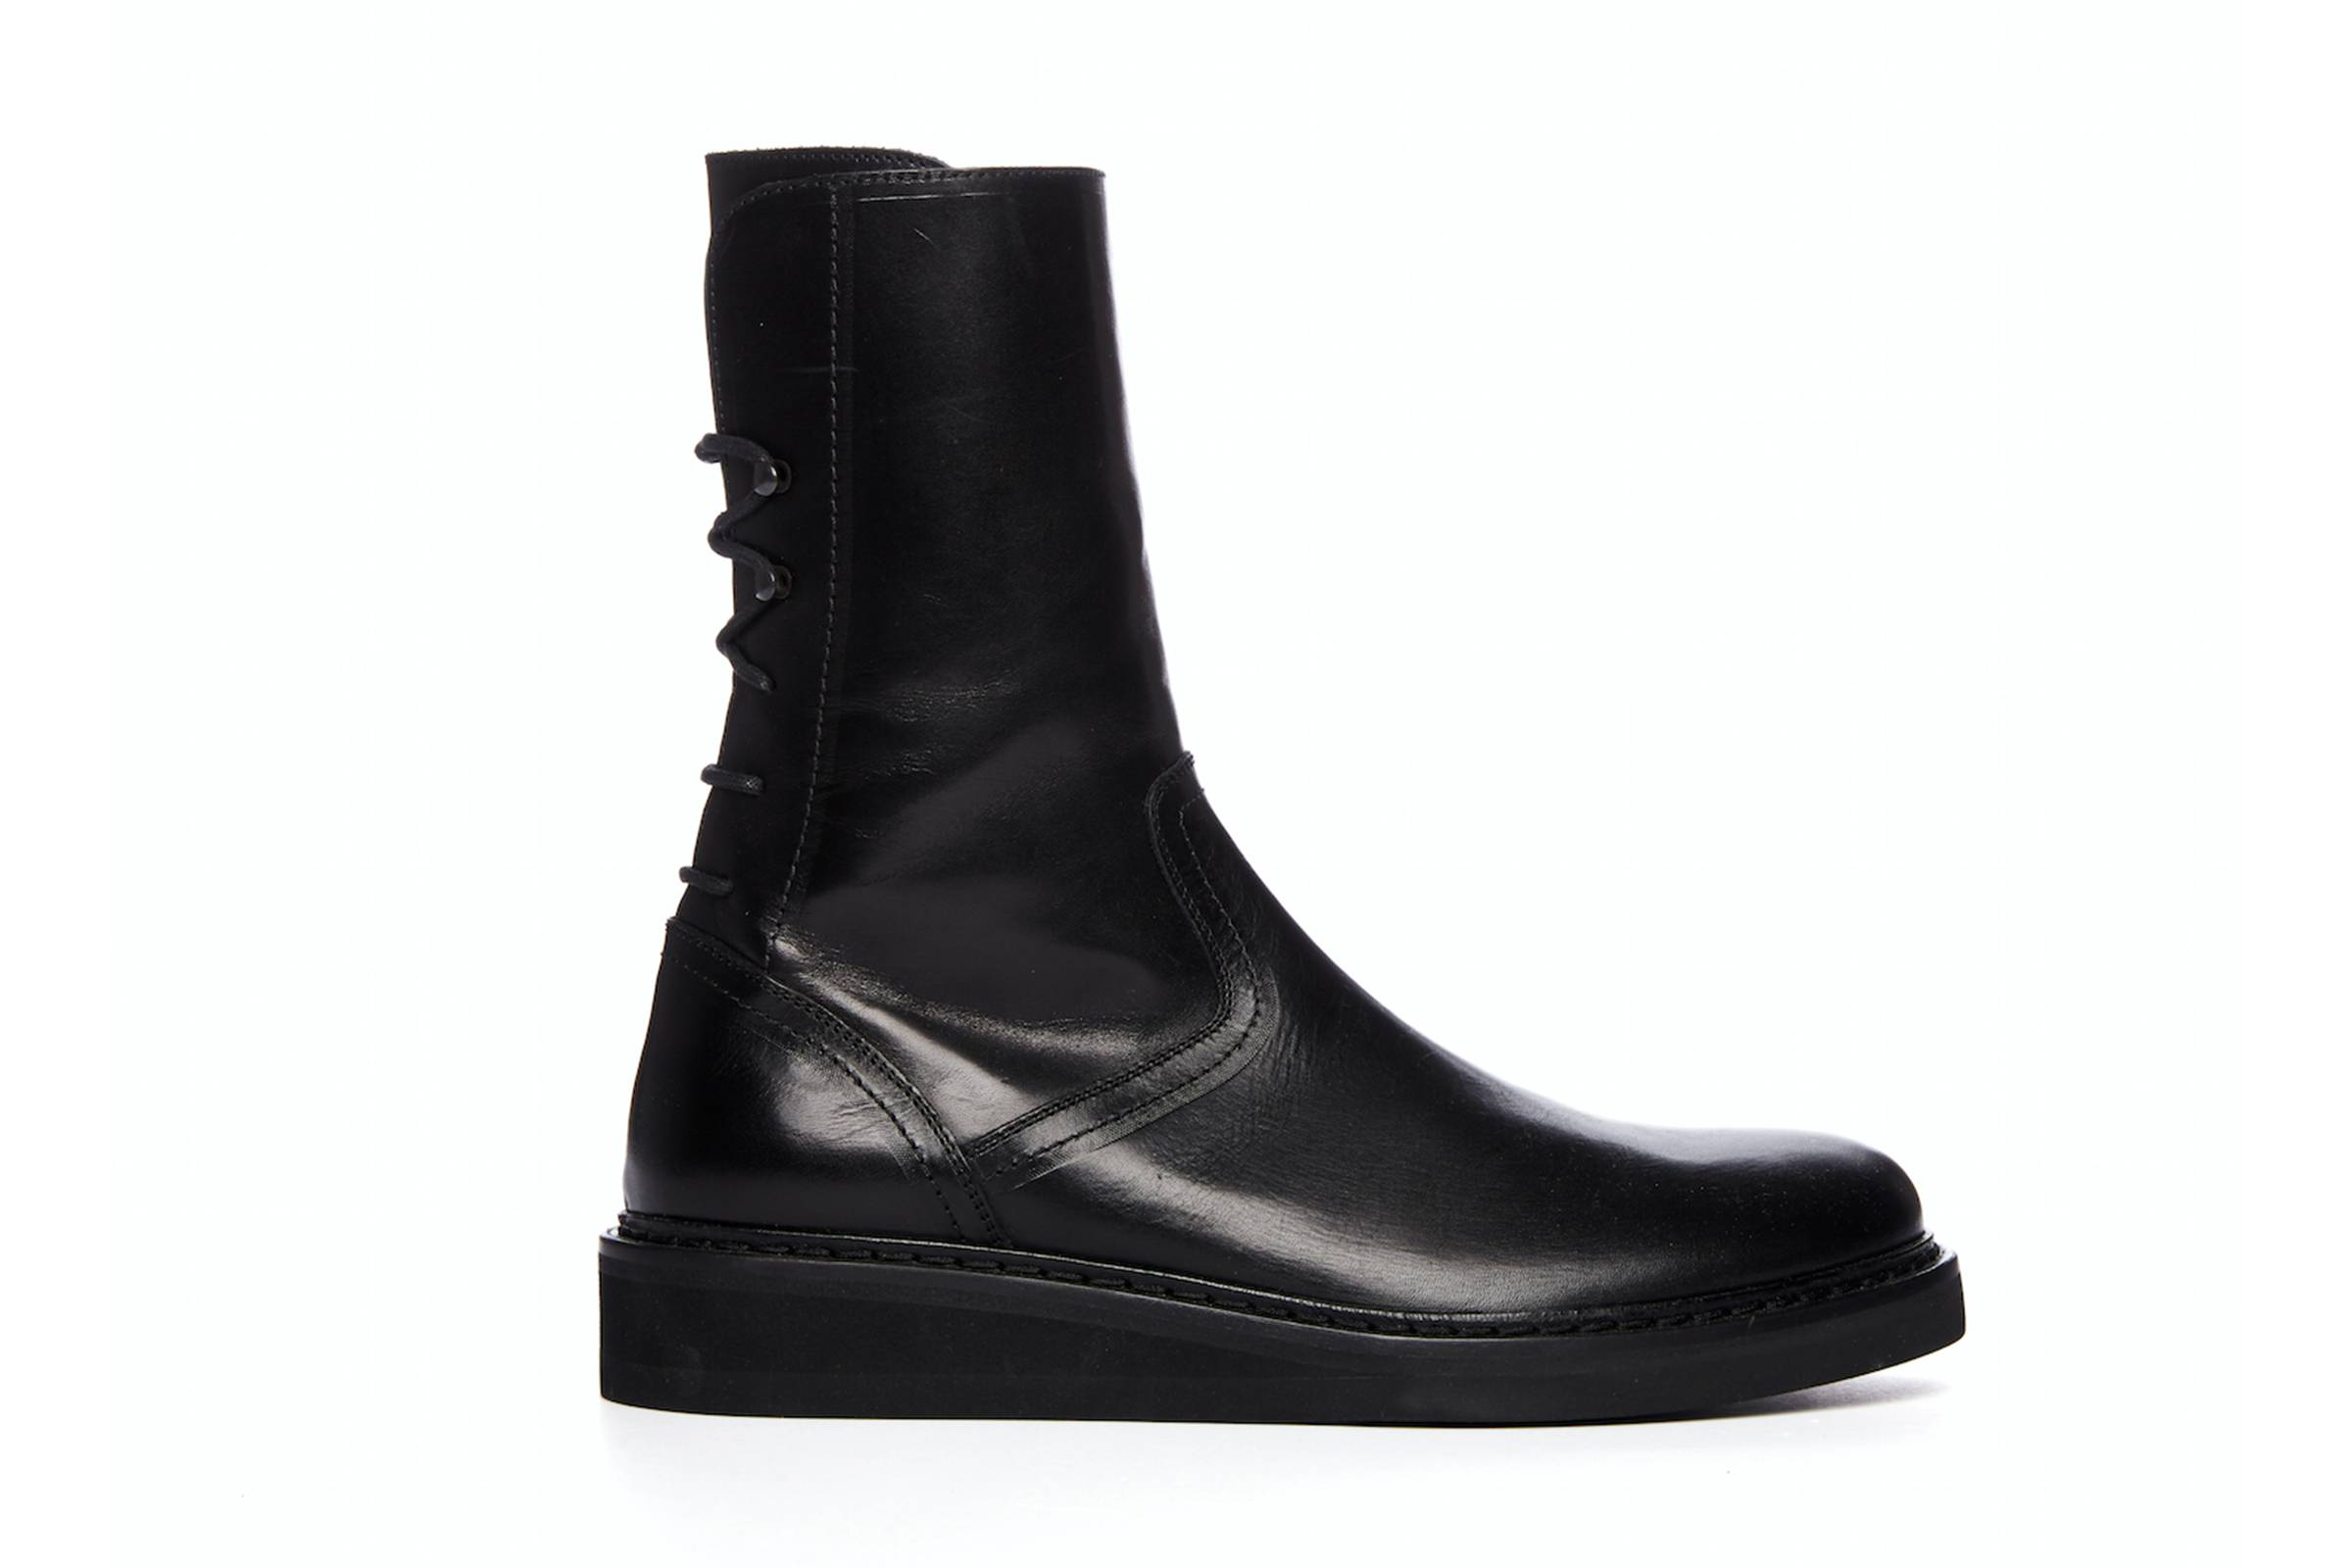 f63864da379 Our 10 Favorite Designer Boots | Grailed